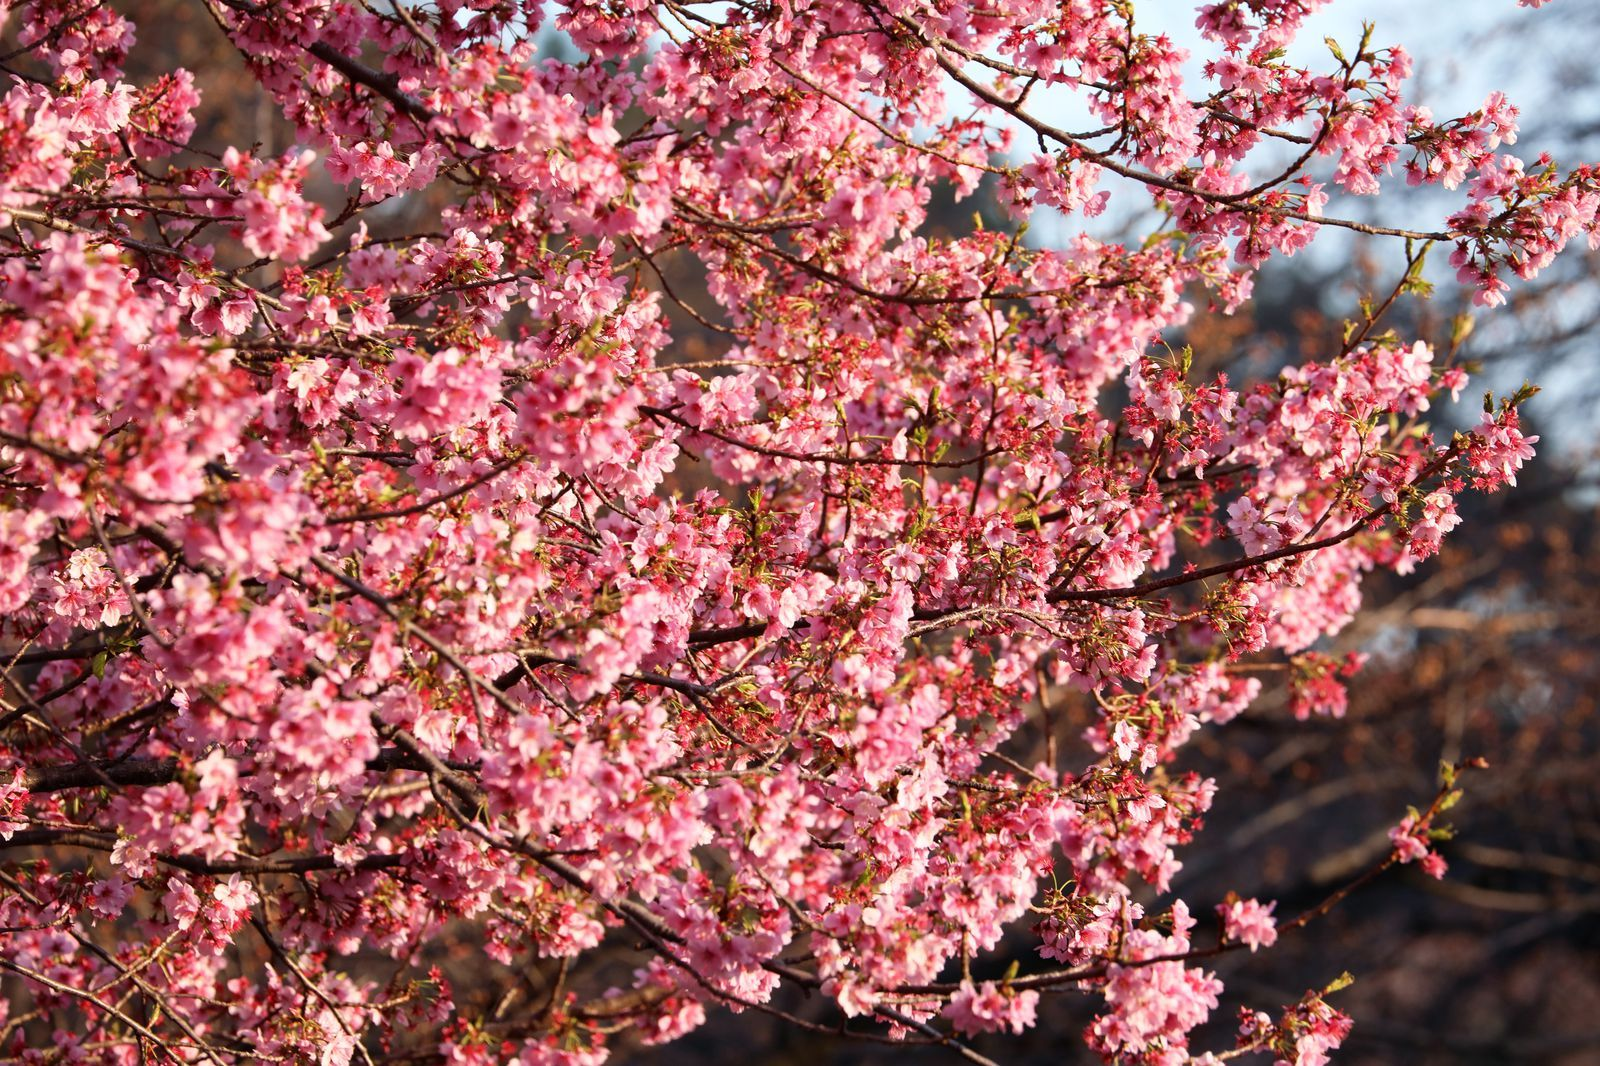 Cherry Blossom Season Has Started In Japan And The Photos Are Breathtaking Cherry Blossom Season Cherry Blossom Japan Cherry Blossom